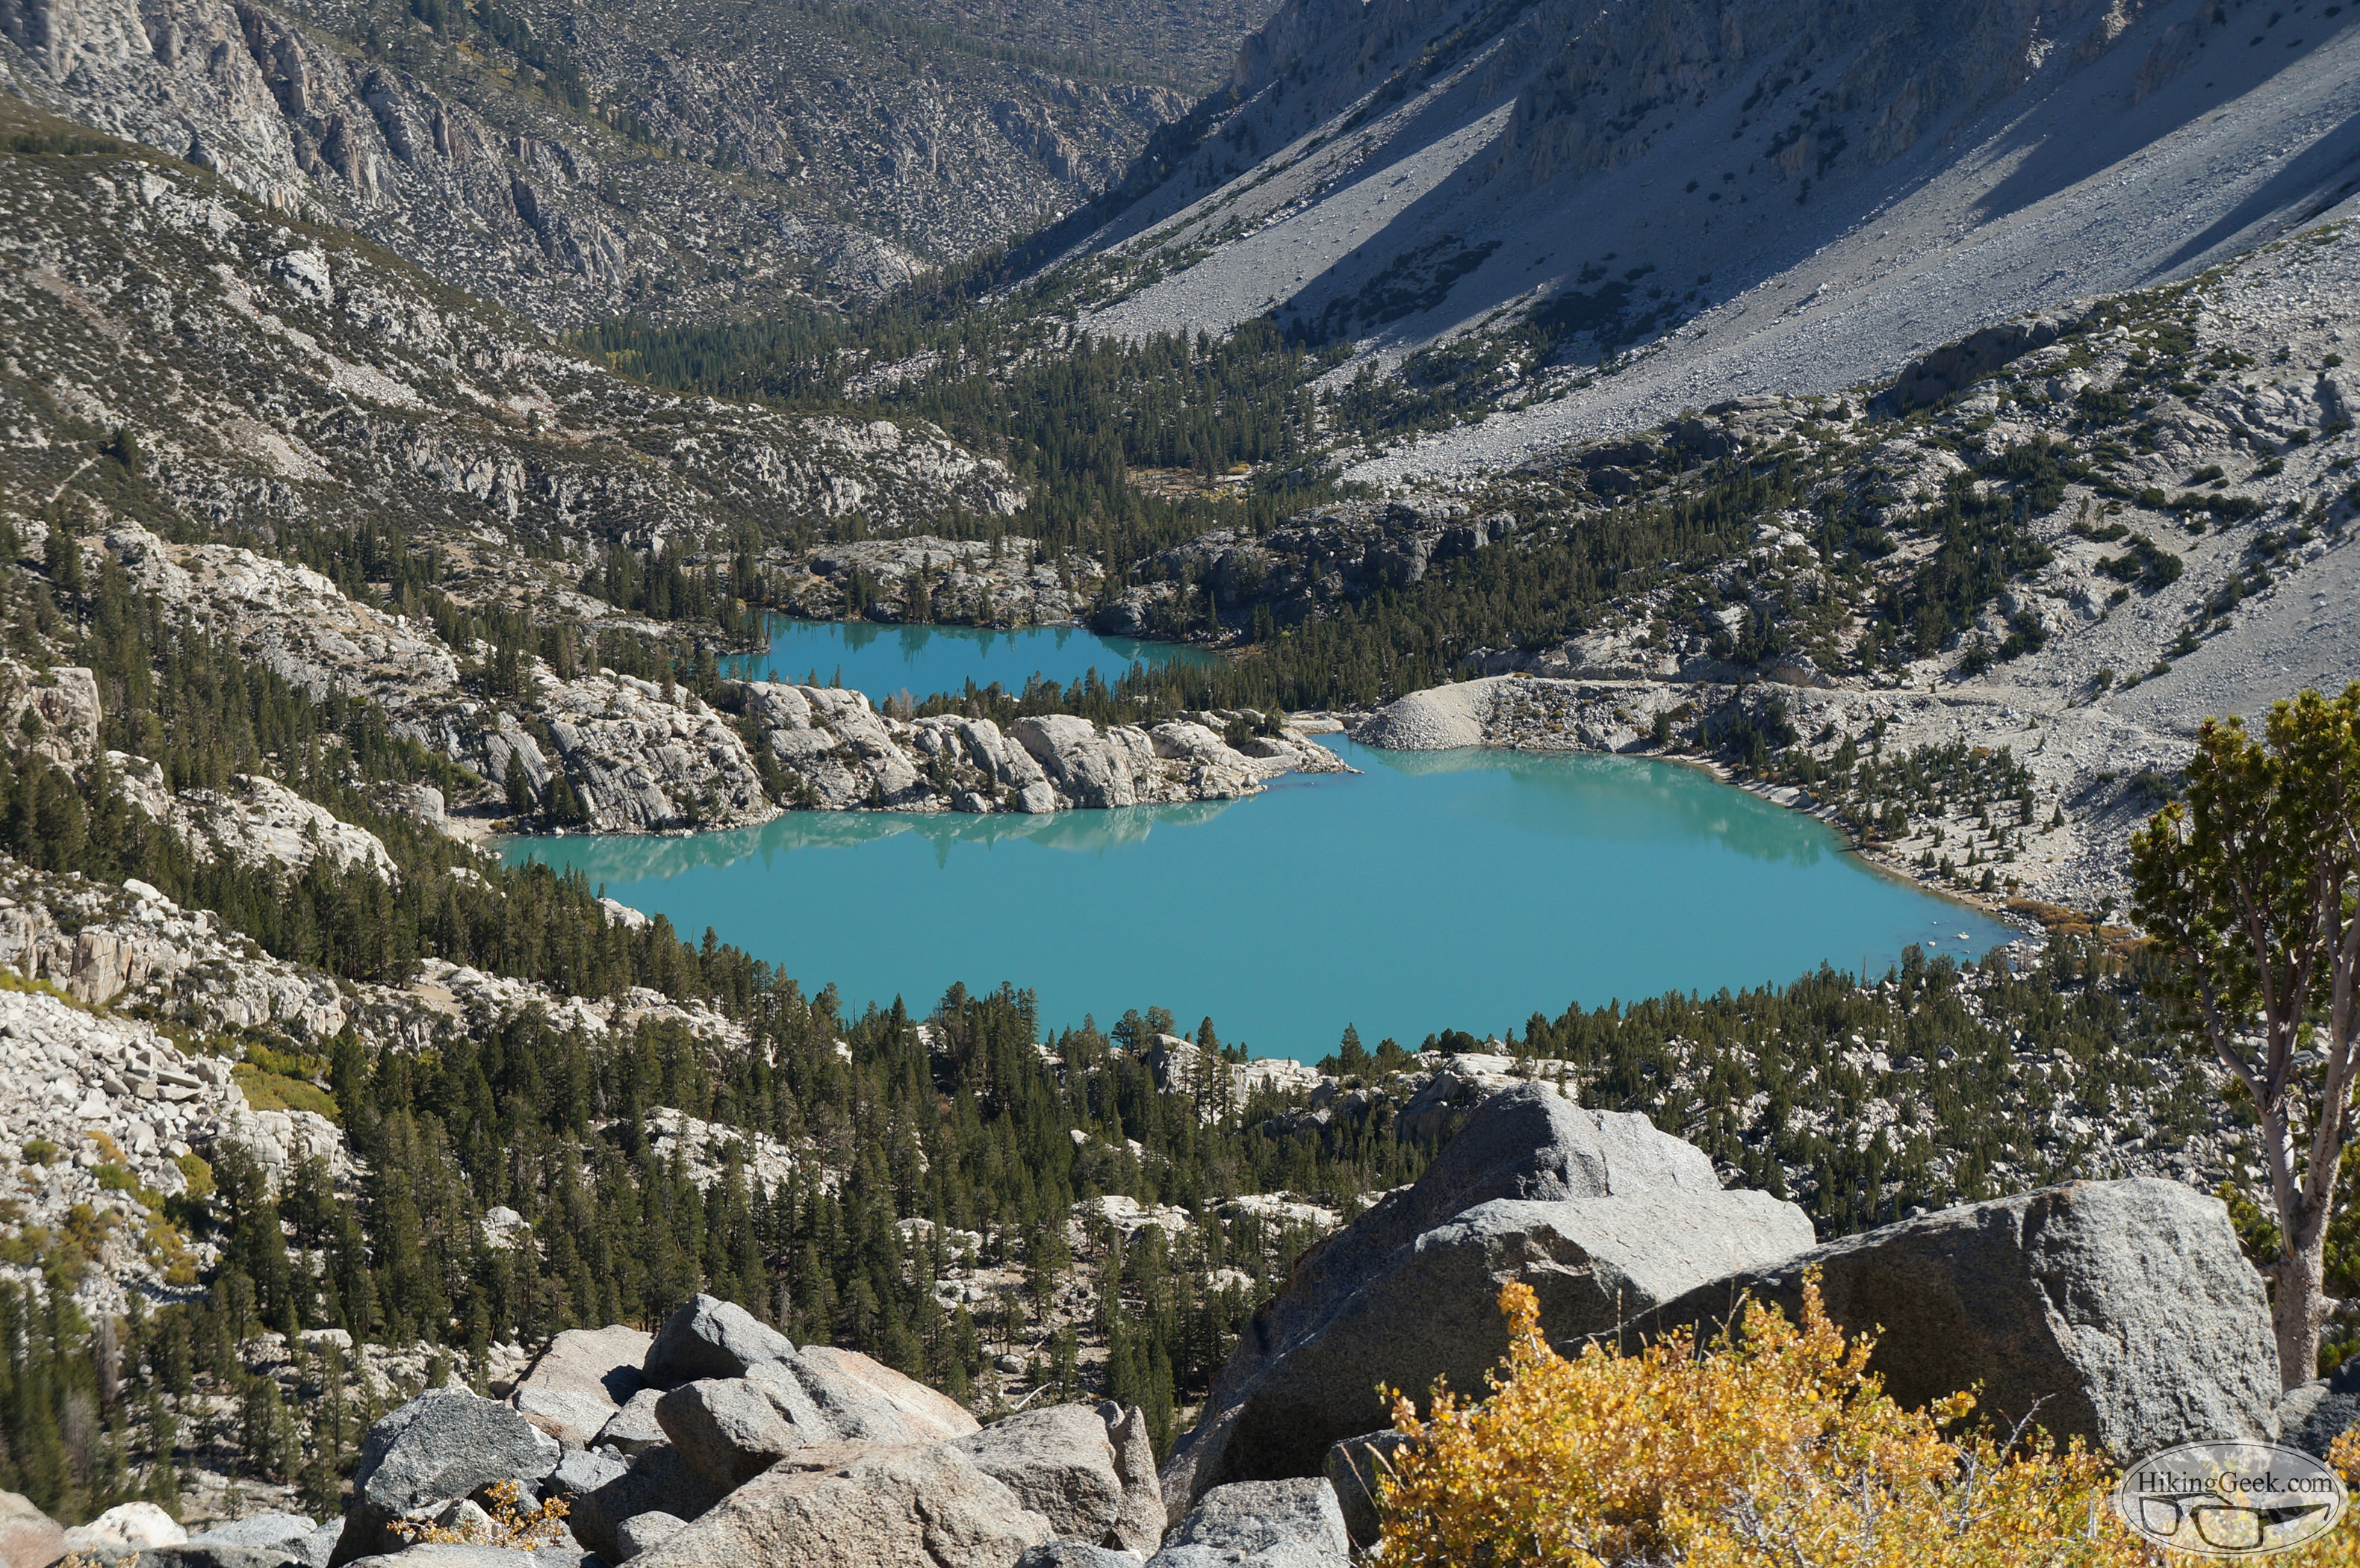 North Fork of Big Pine Creek: Lakes 1-3, Sam Mack Meadow & Beyond, October 3, 2015